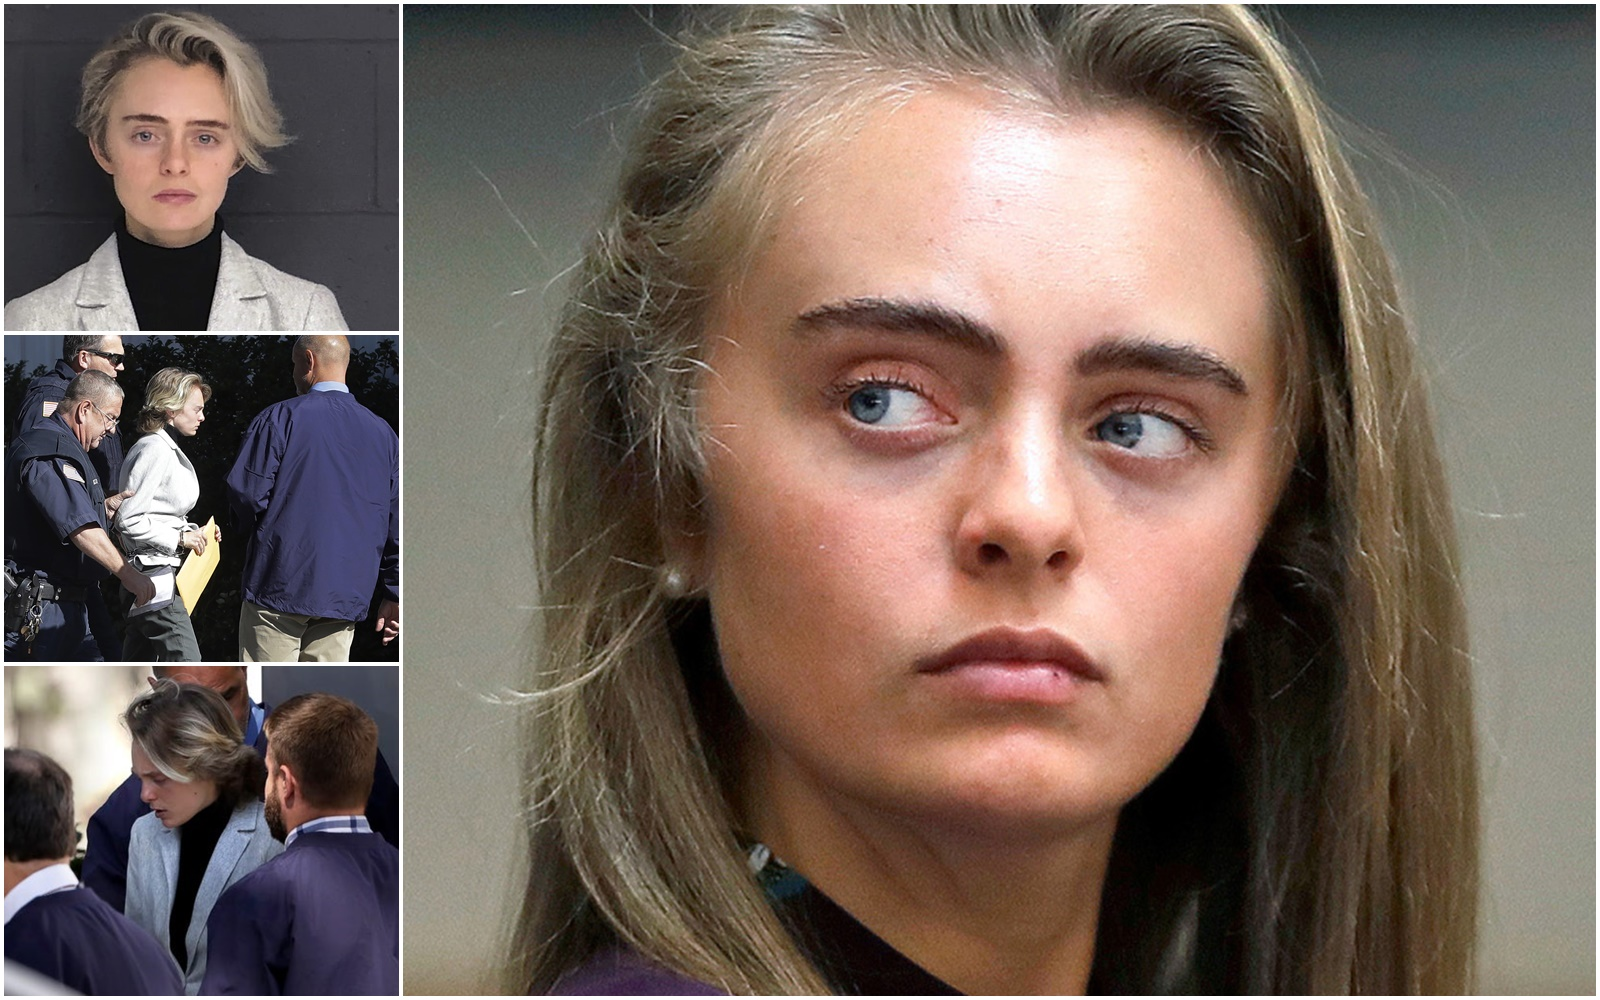 Michelle Carter, Woman Convicted of Convincing Boyfriend To Commit Suicide, is Denied Parole